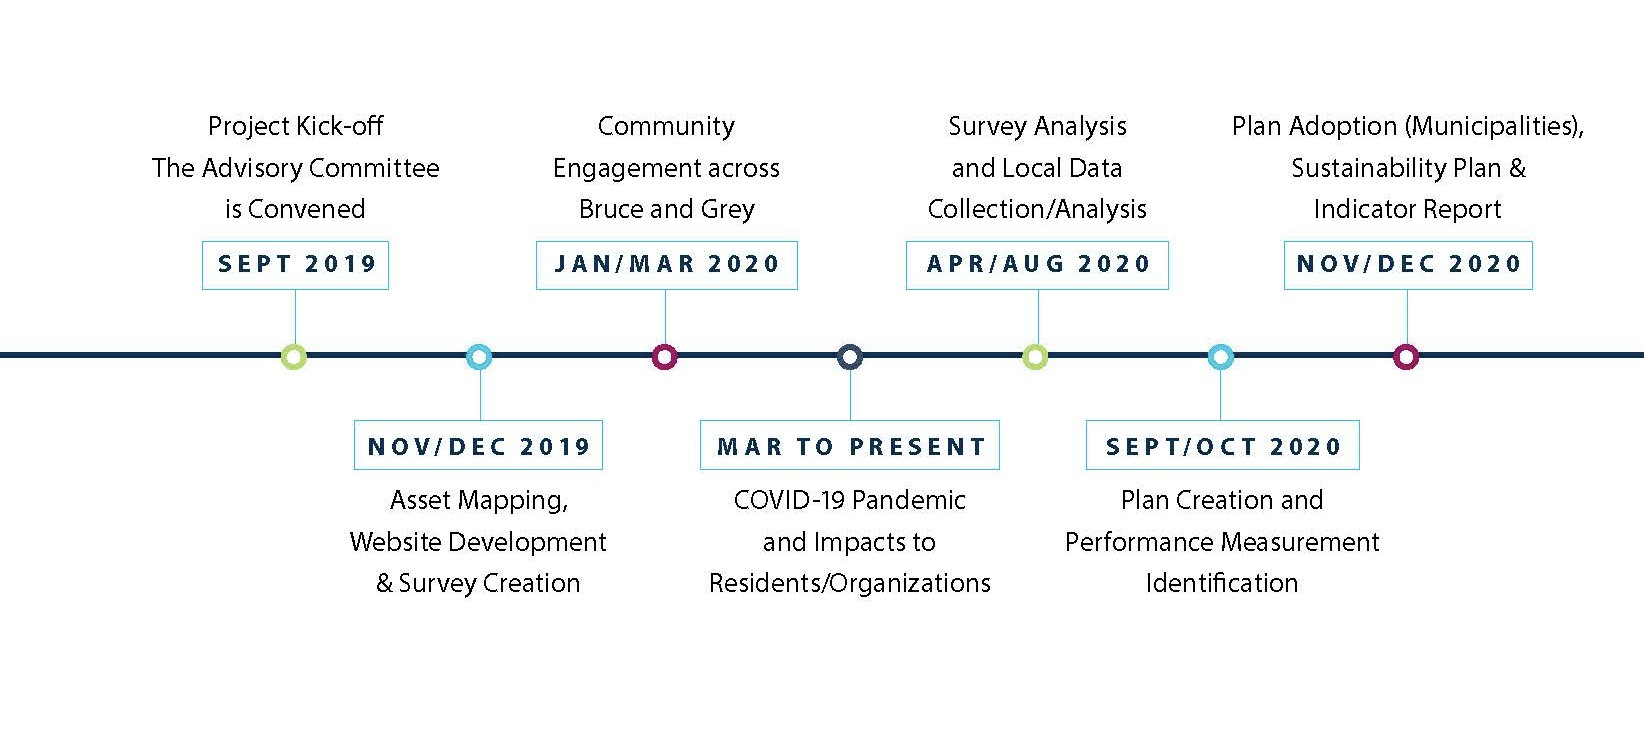 Phase 1 CSWBP Timeline for Bruce and Grey